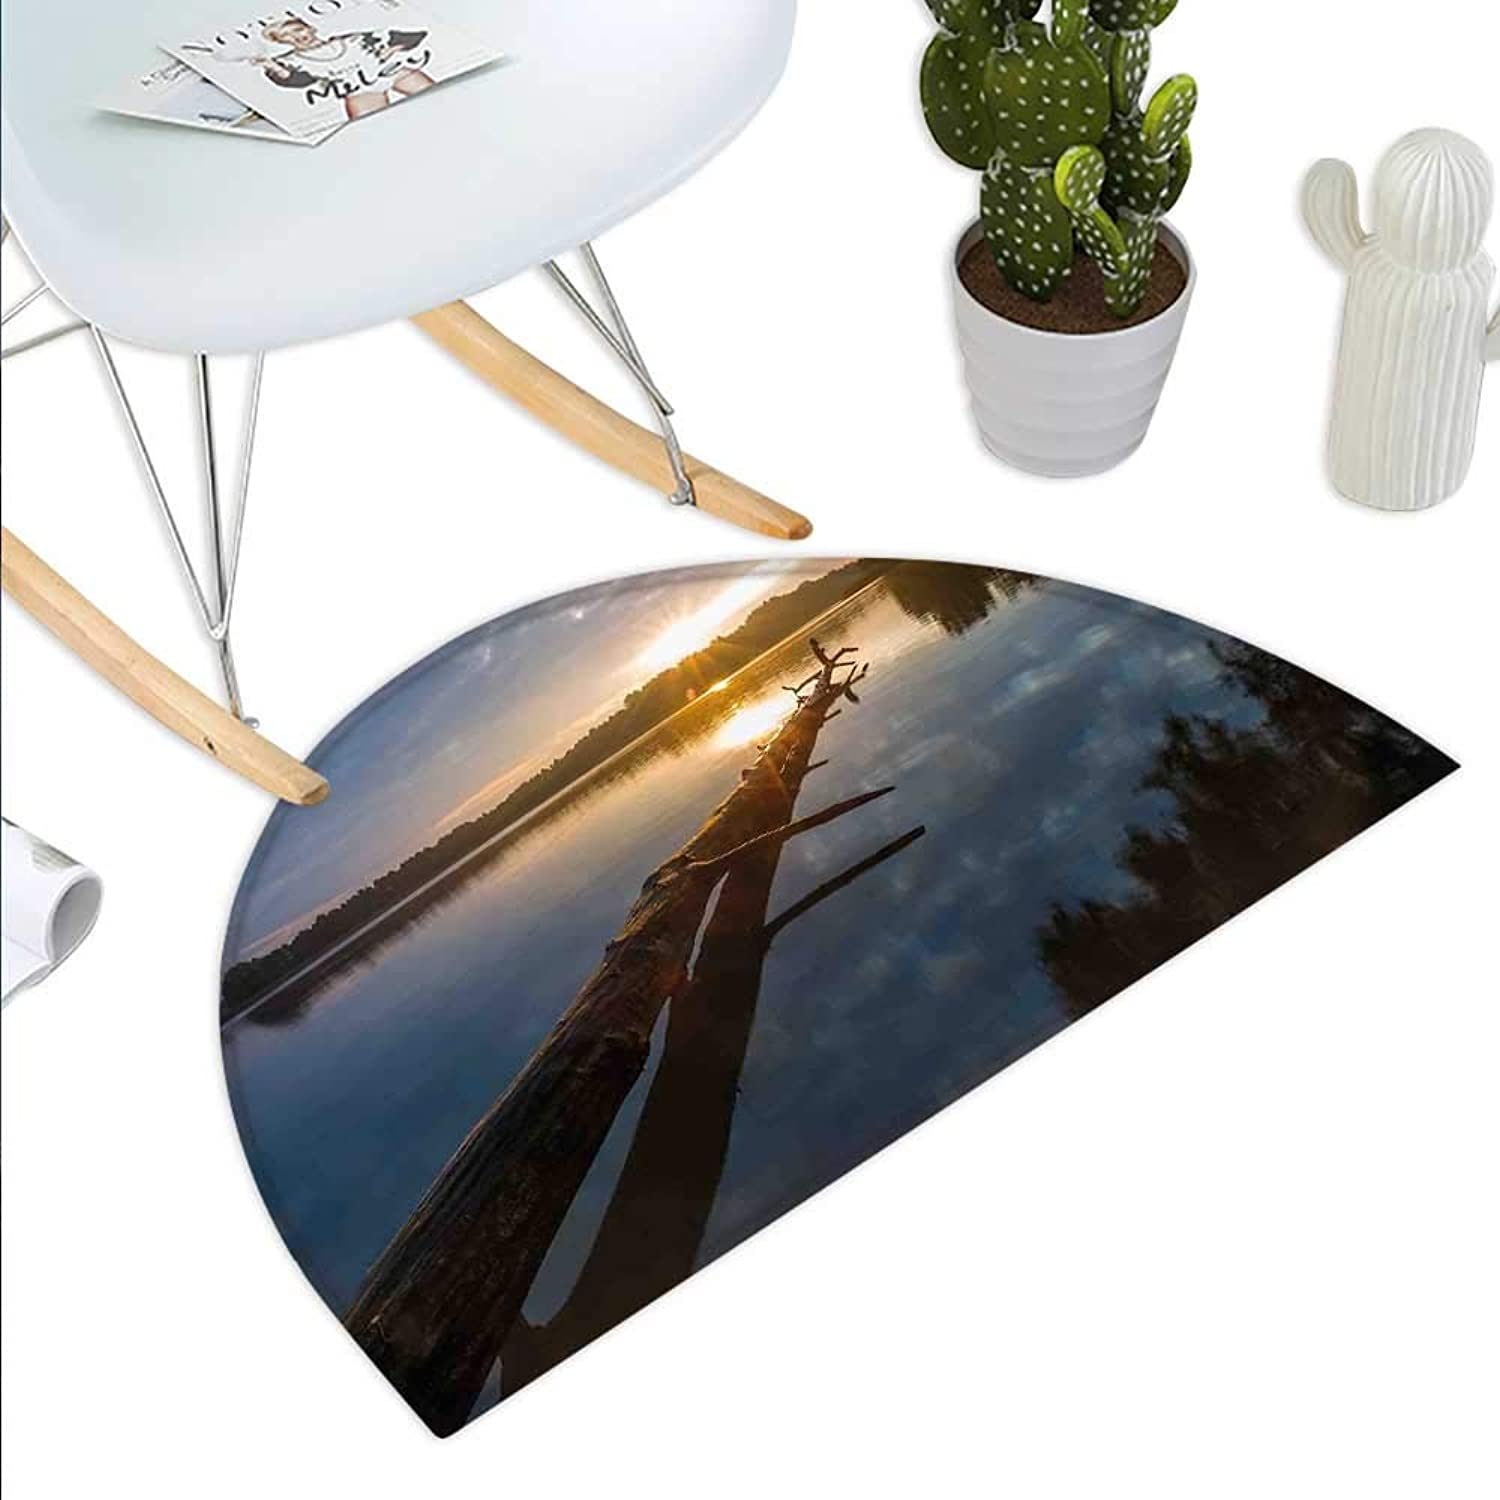 Driftwood Semicircle Doormat Natural Theme Landscape of Driftwood and Lake in Poland a Sunny Summer Day Halfmoon doormats H 43.3  xD 64.9  bluee Grey Yellow